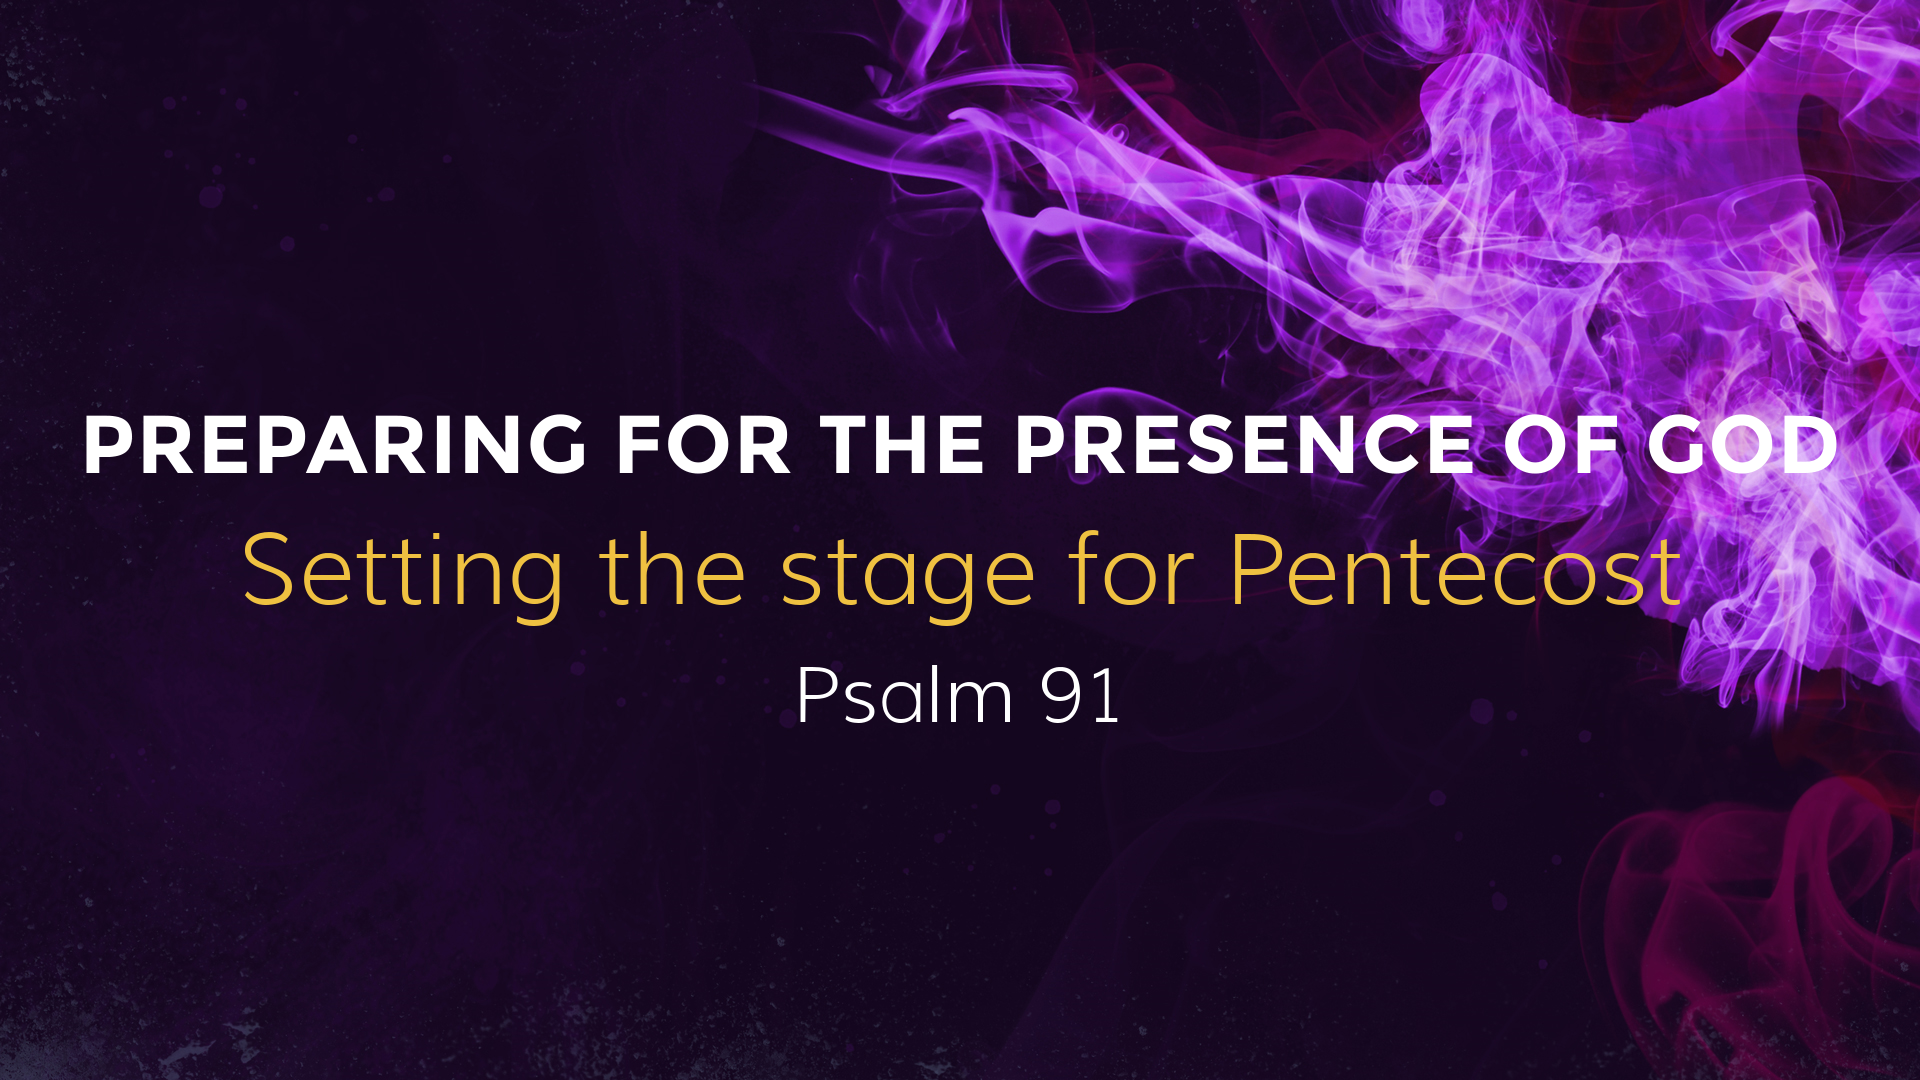 Preparing for the presence of God